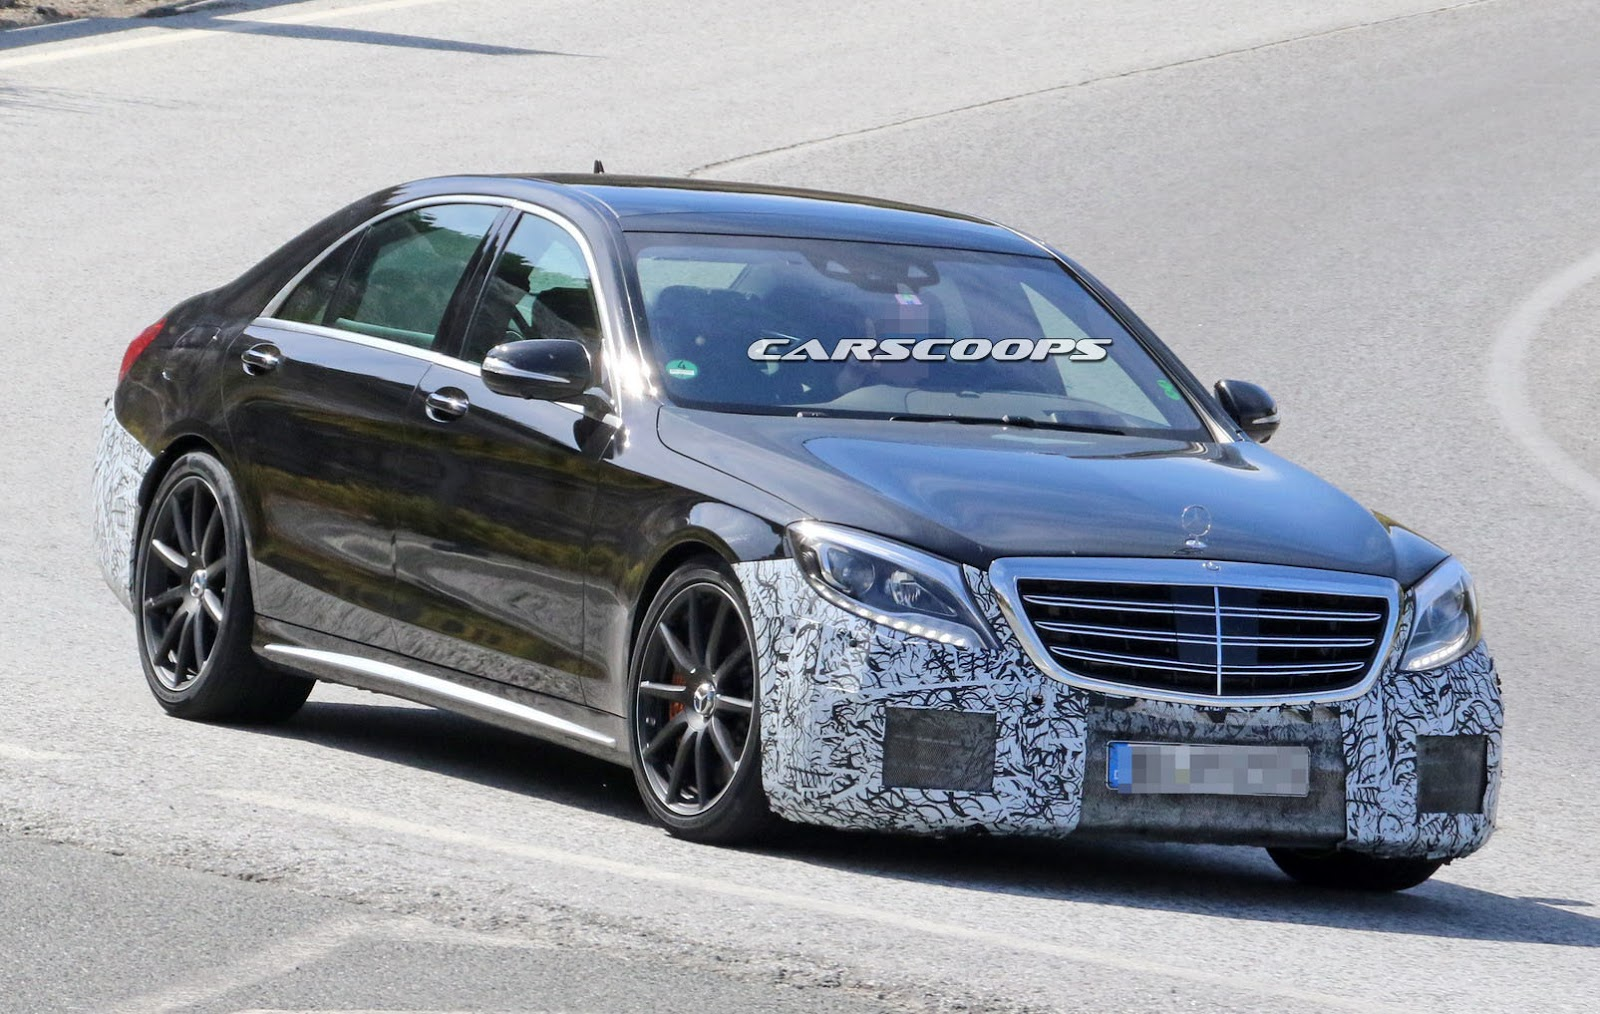 mercedes putting the final touches on facelifted s class s63 amg carscoops. Black Bedroom Furniture Sets. Home Design Ideas